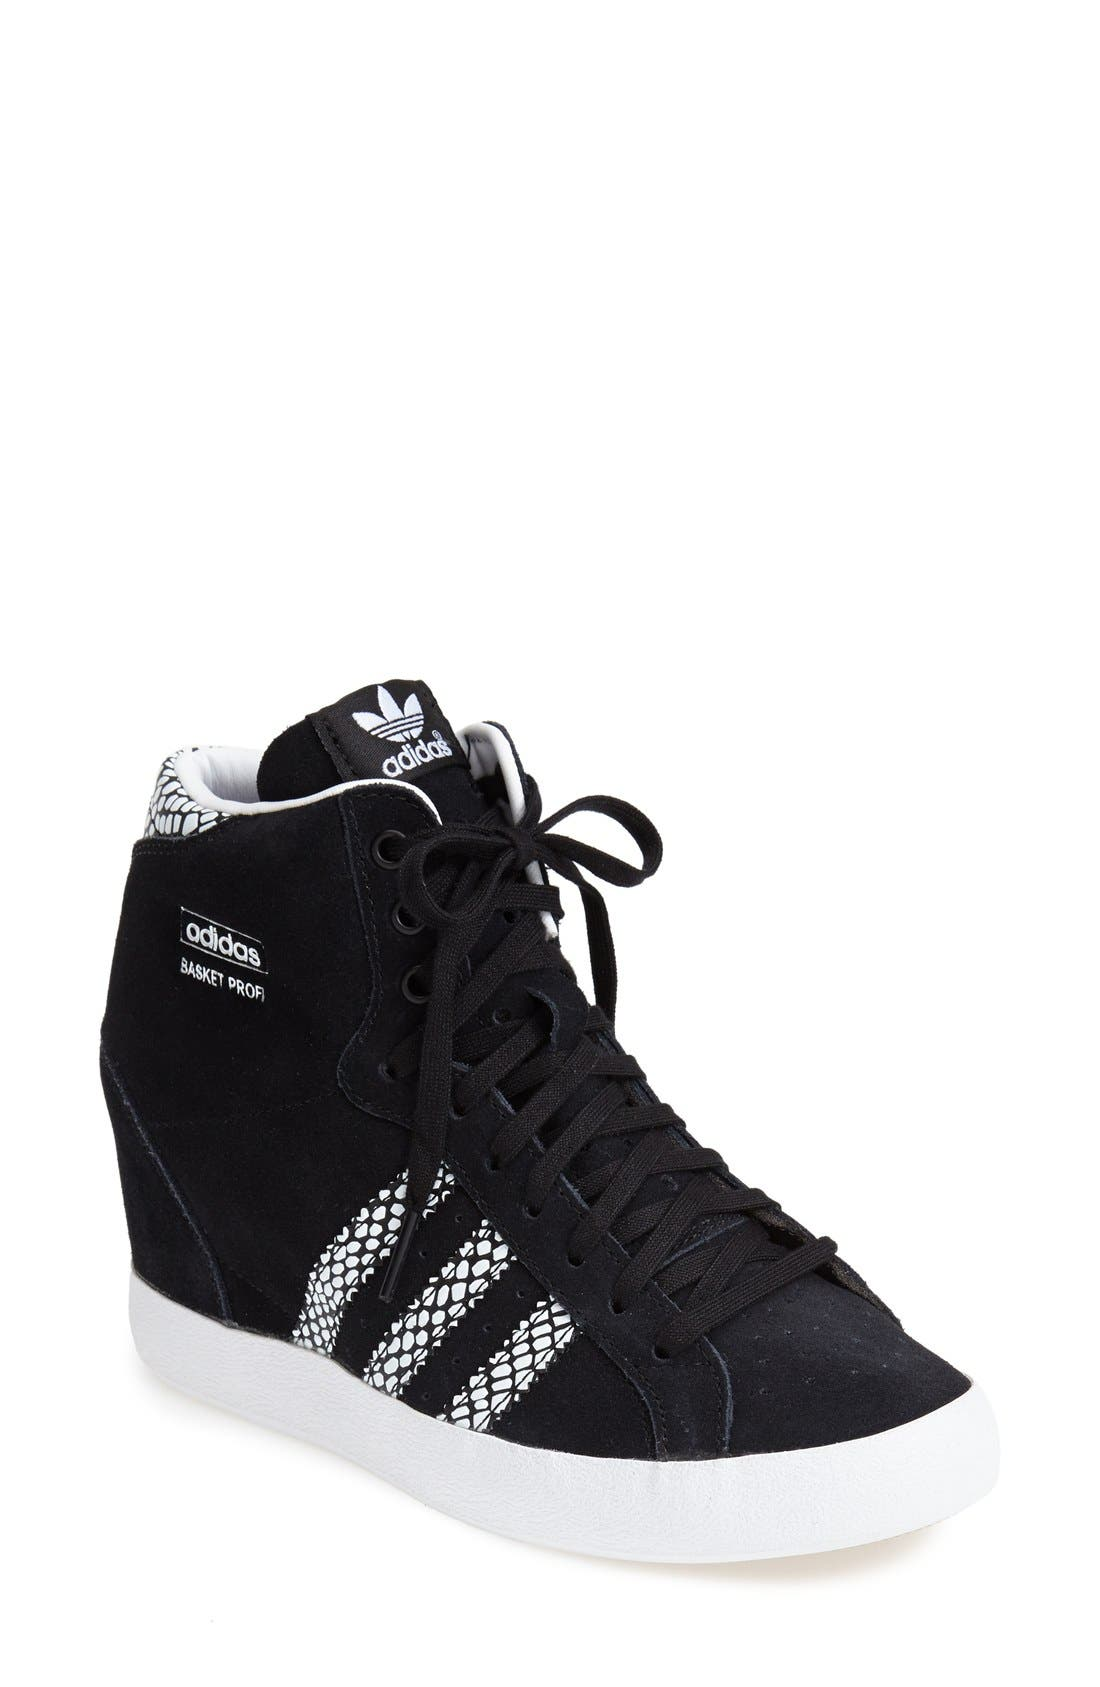 adidas originals superstar concealed wedge high top trainers